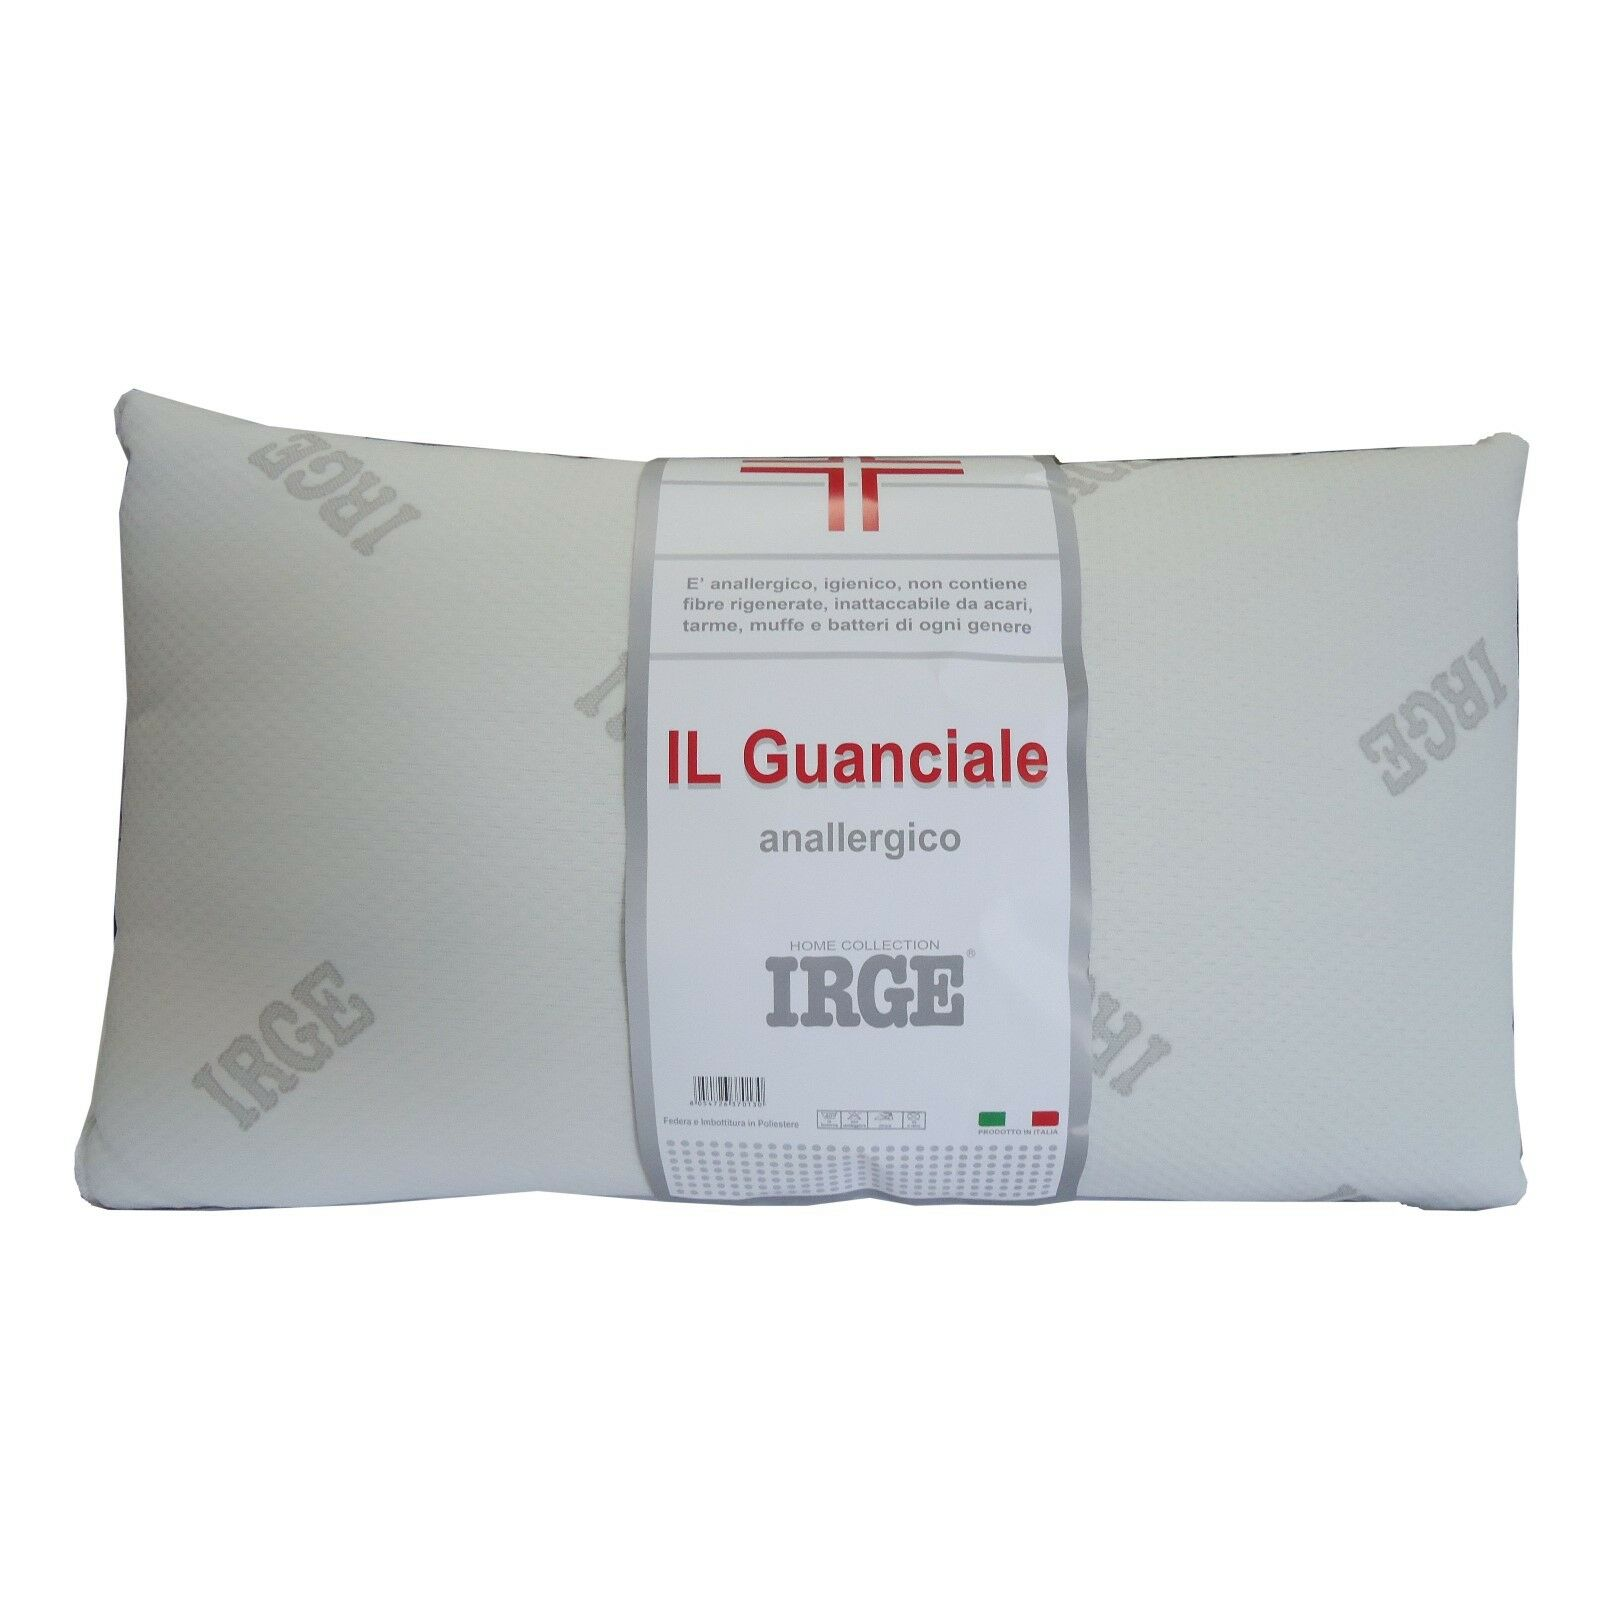 Irge Cuscini.Cuscino Guanciale Irge Anallergico Igienico Made In Italy 50x80